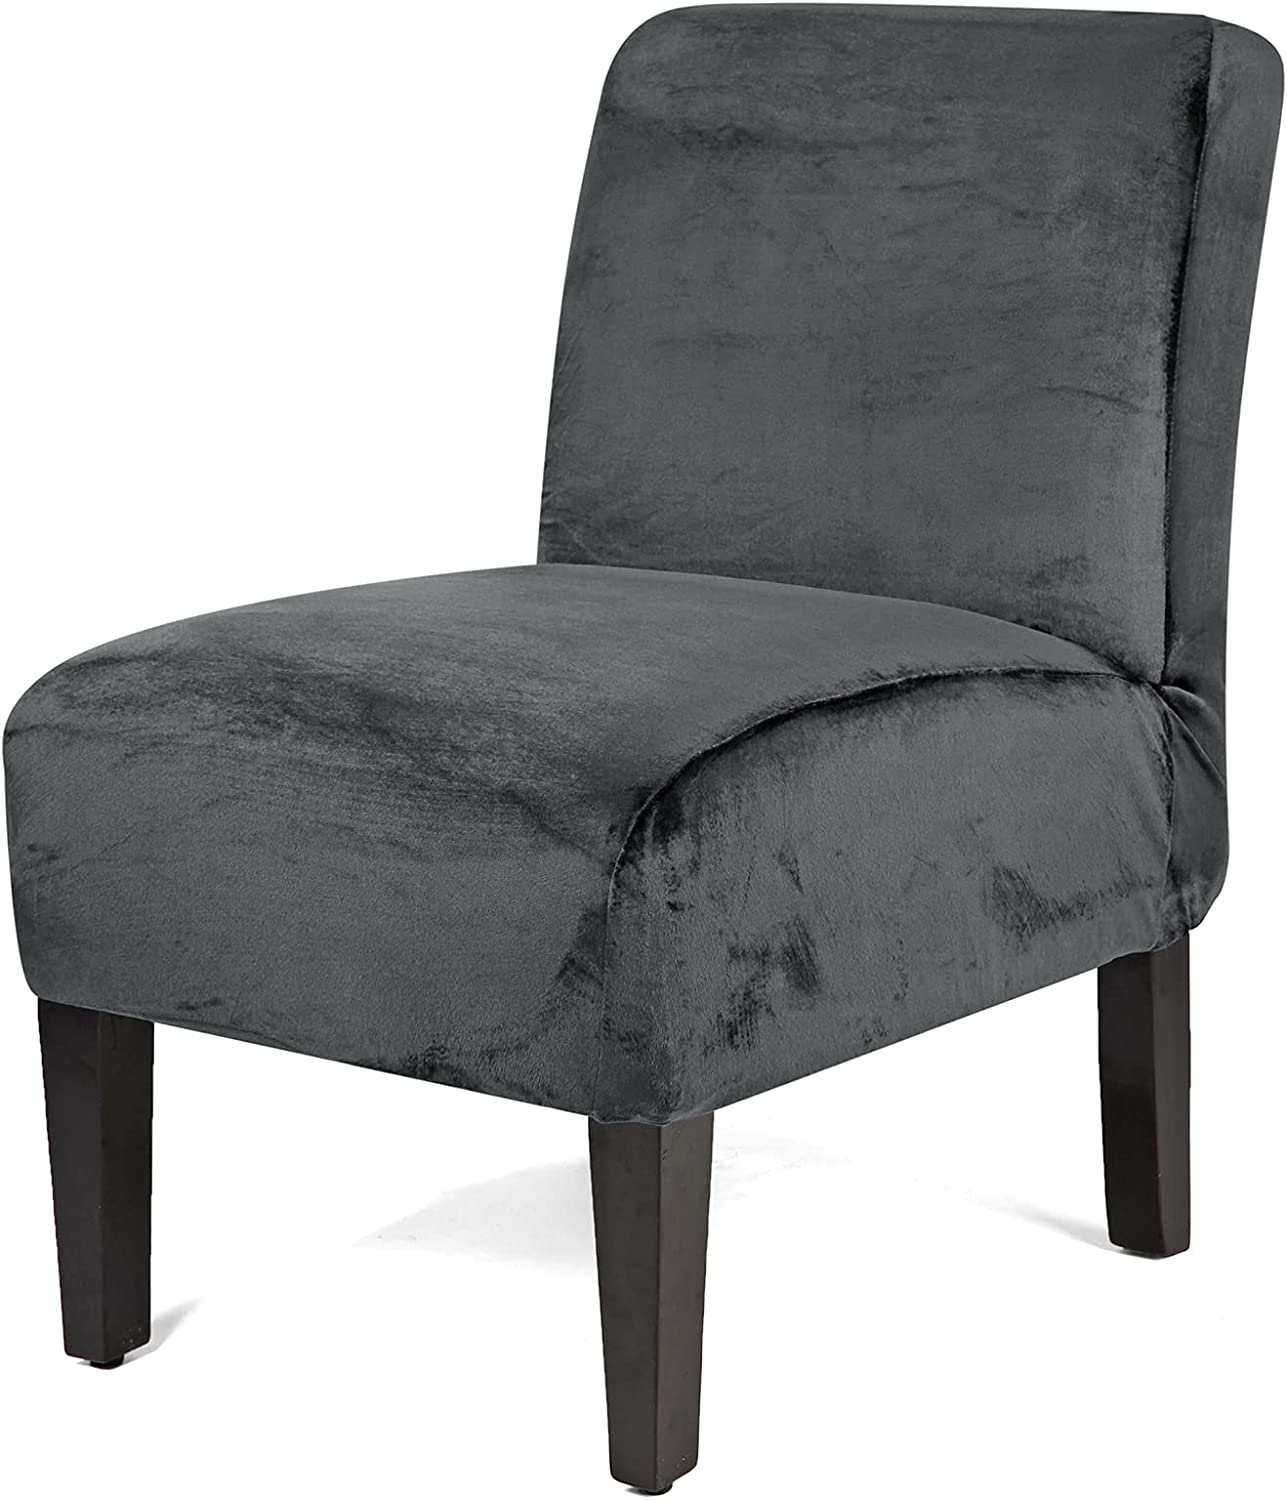 Quantity limited WOMACO Armless Max 81% OFF Accent Chair Velvet Slipcover Slip Stretch